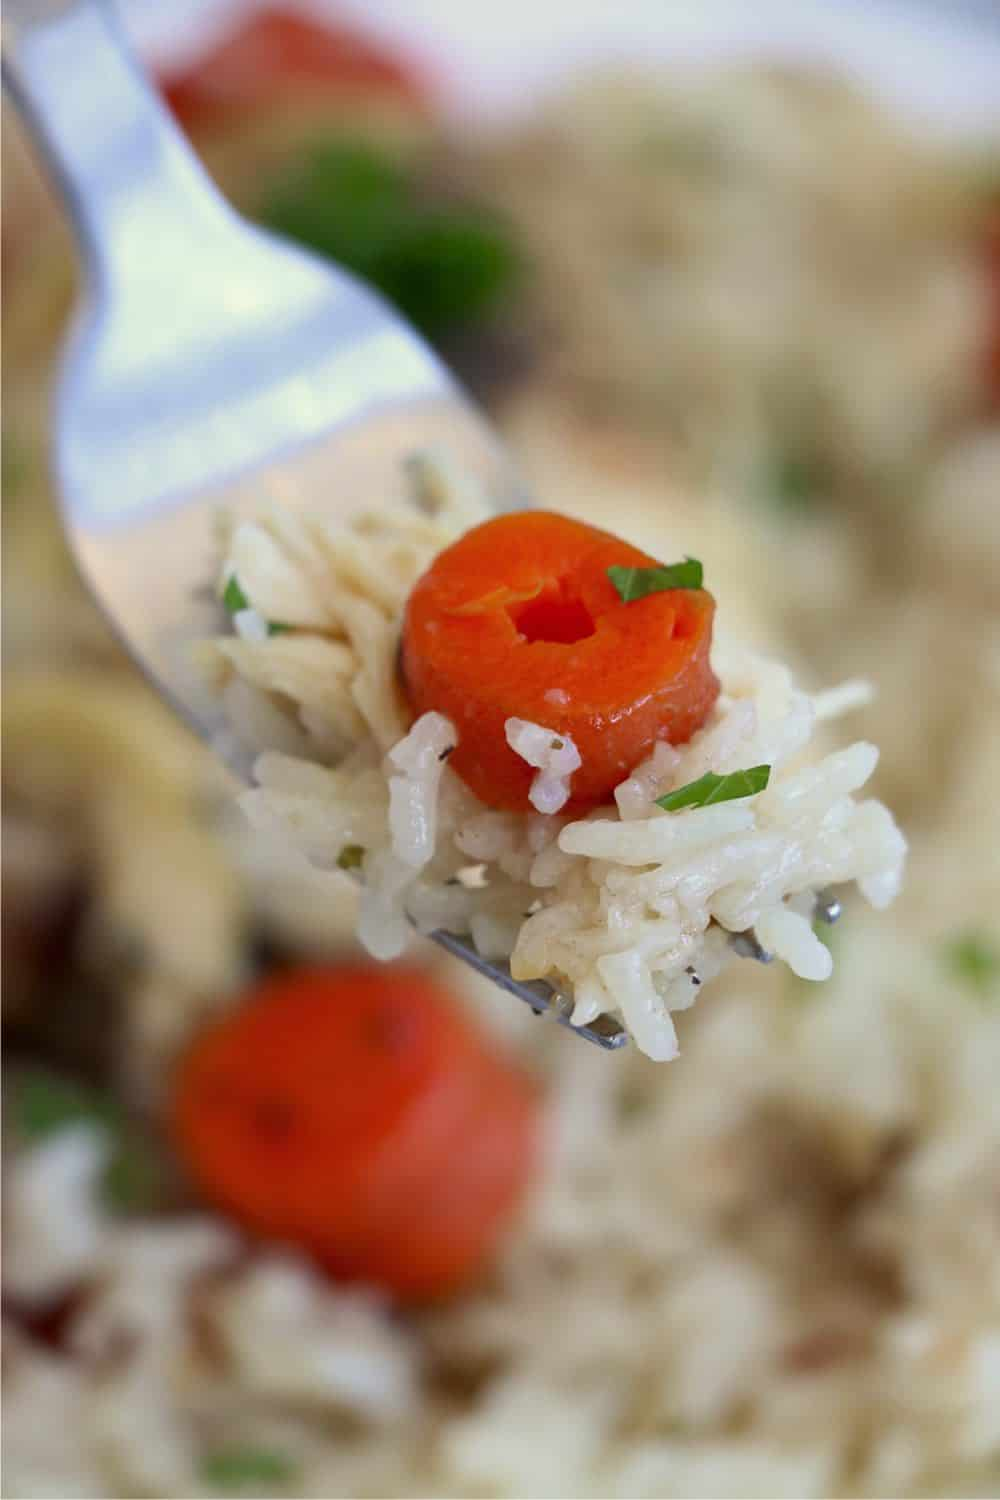 A close-up photo of a fork with a bite of rice and one chopped carrot on it